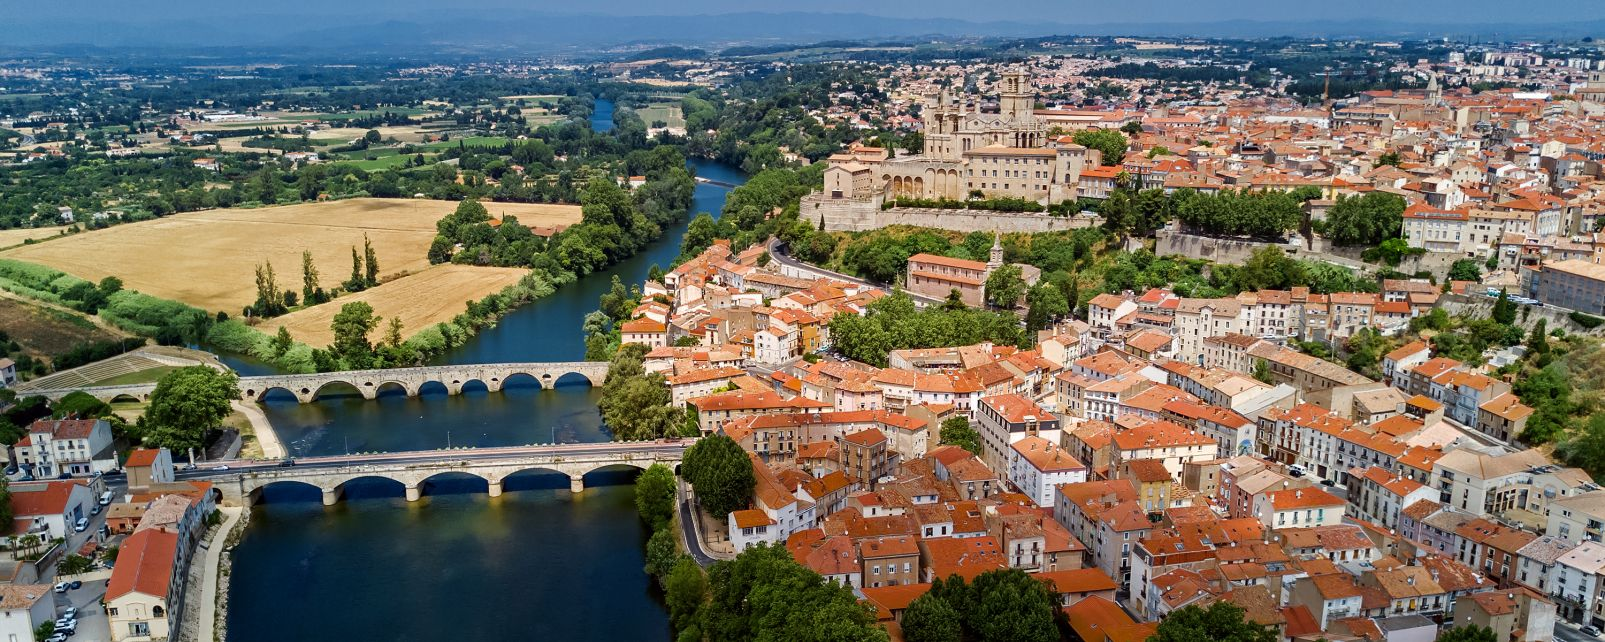 Béziers, Languedoc-Rosellon, Francia